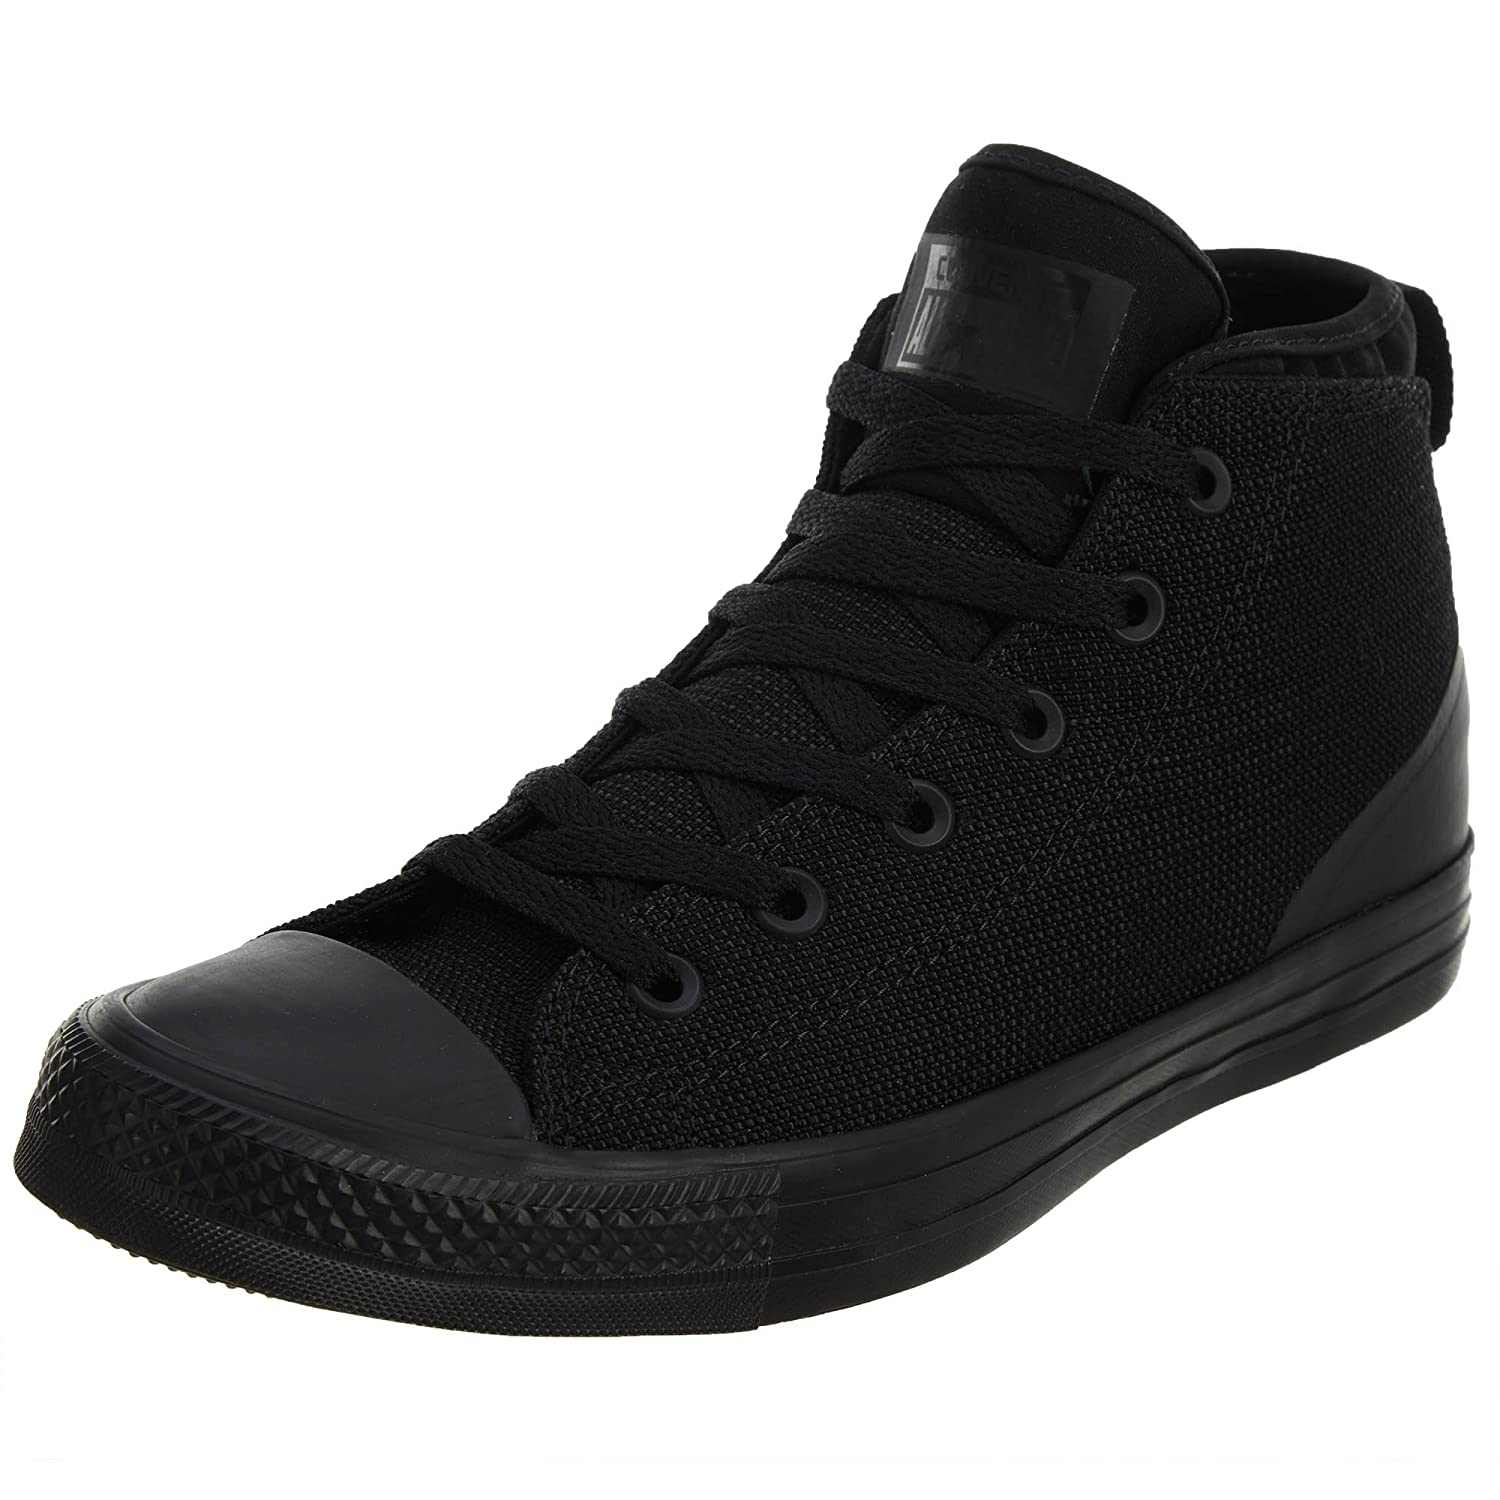 Converse Womens Chuck Taylor All Star Syde Street Mid Canvas Trainers 39 EU|Black